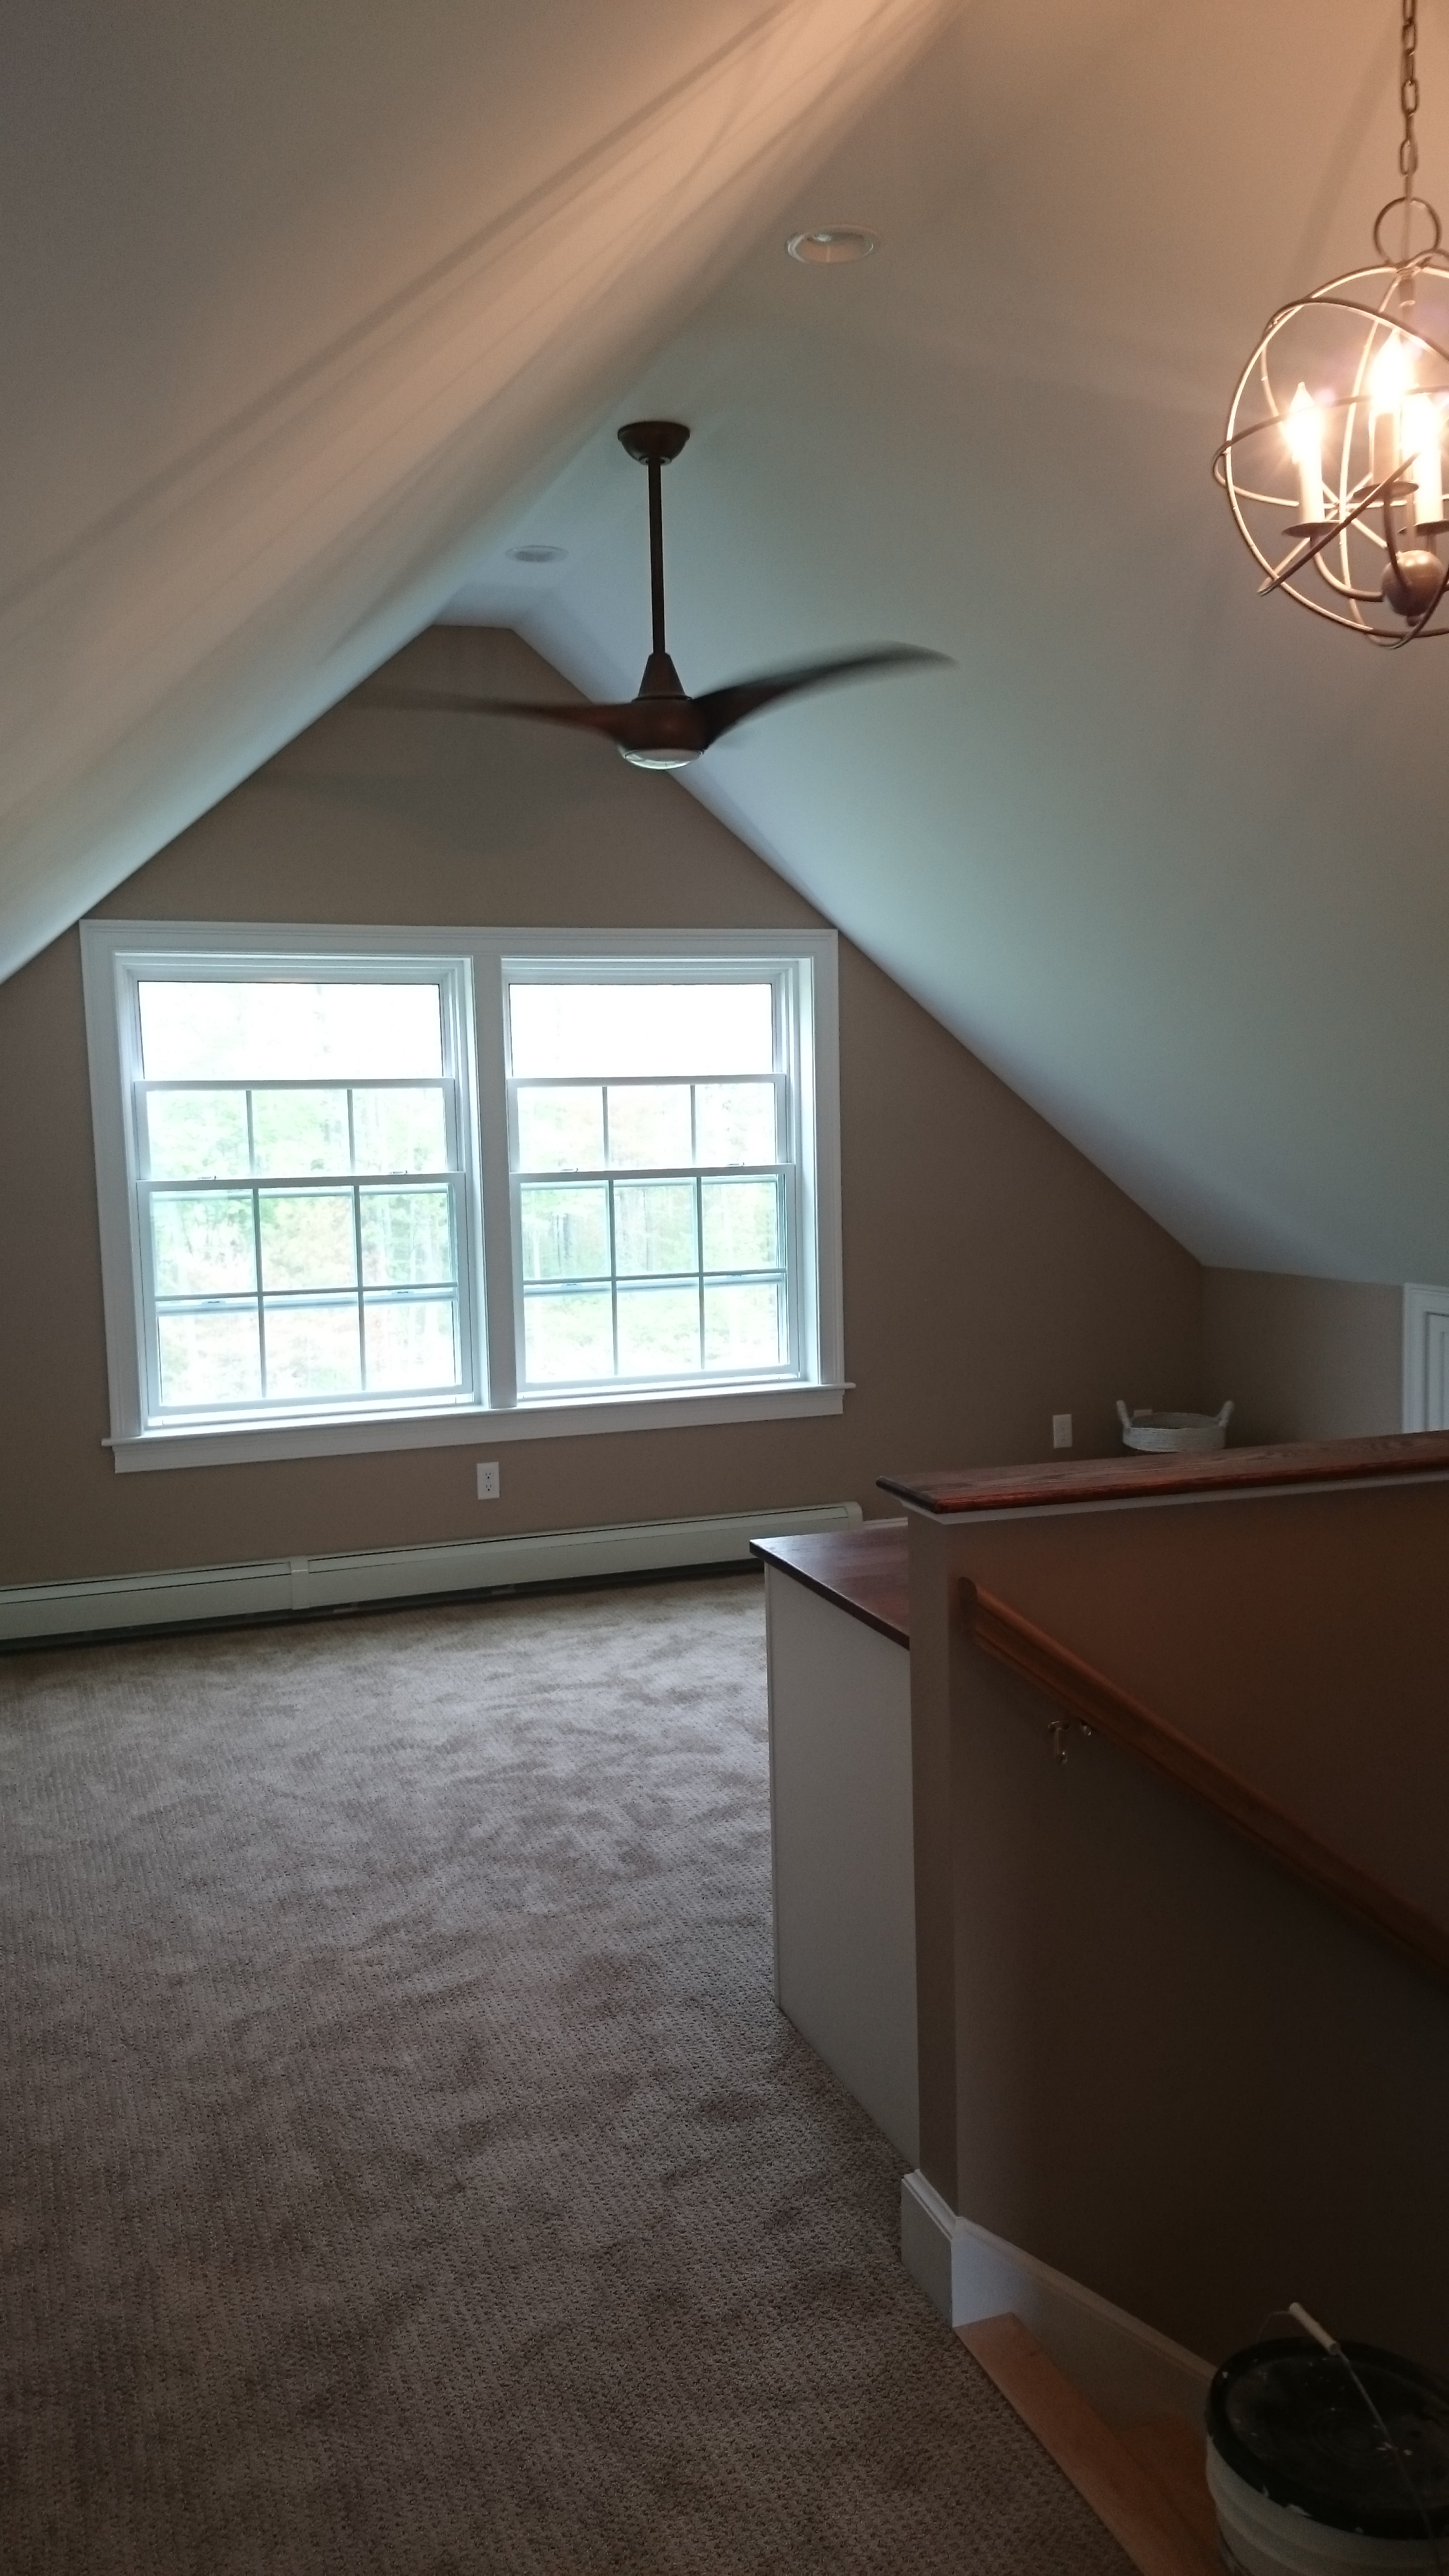 An Attic Can Be A Great Way To Expand Living E With Extra Bedroom Office Or Family Room You Ve Been Dreaming Of